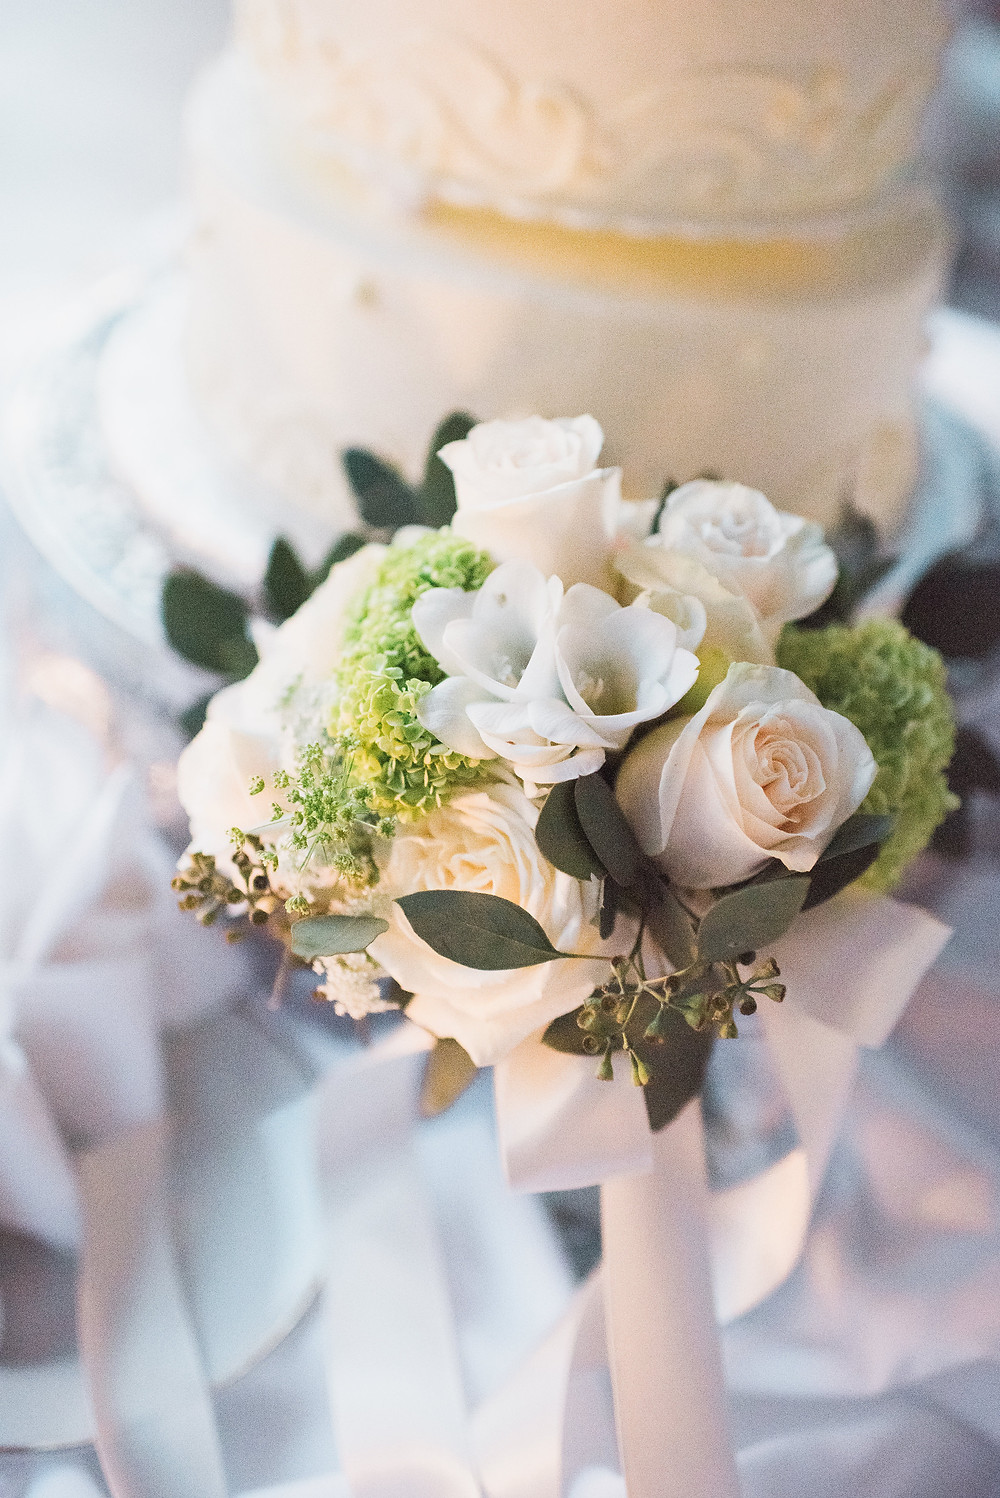 Flowers and wedding cake Grand Island Mansion reception | Visual Impact Design wedding flowers | Custock Photography